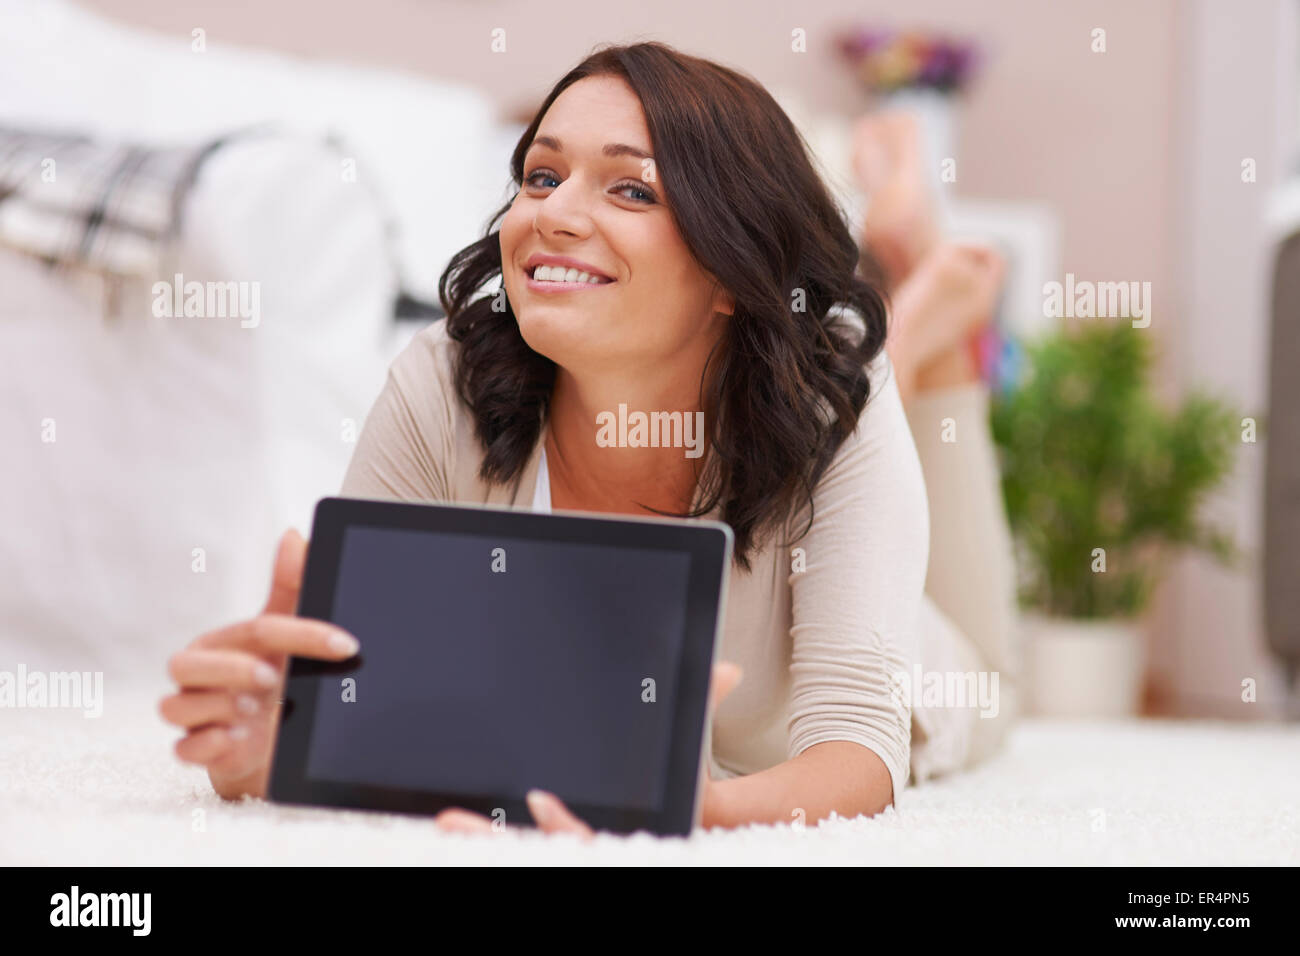 Look at the digital display of my tablet! Debica, Poland - Stock Image